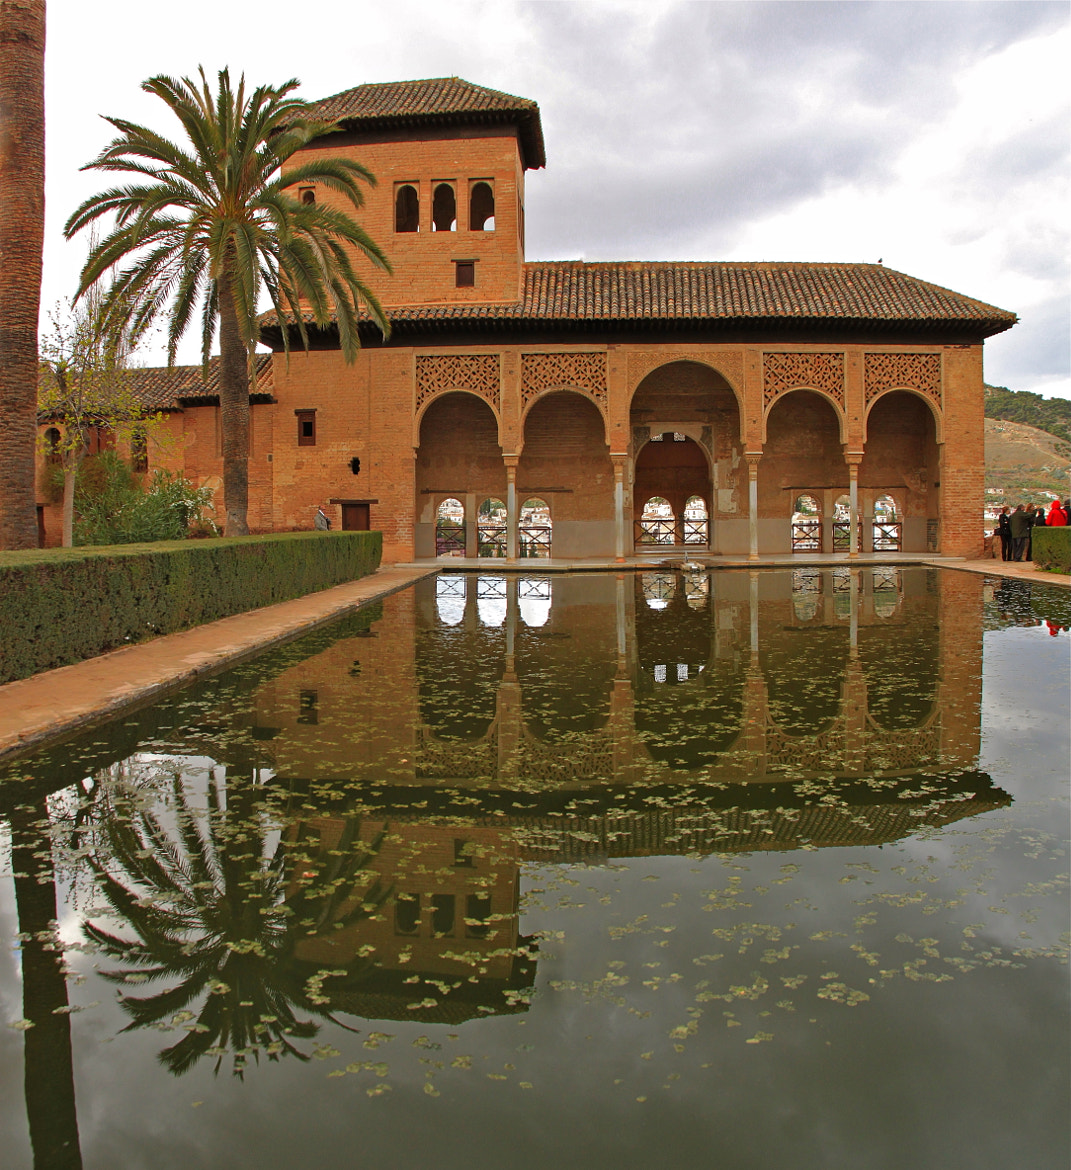 Photograph Alhambra, Andalusia, Spain by Karthik Gellia on 500px